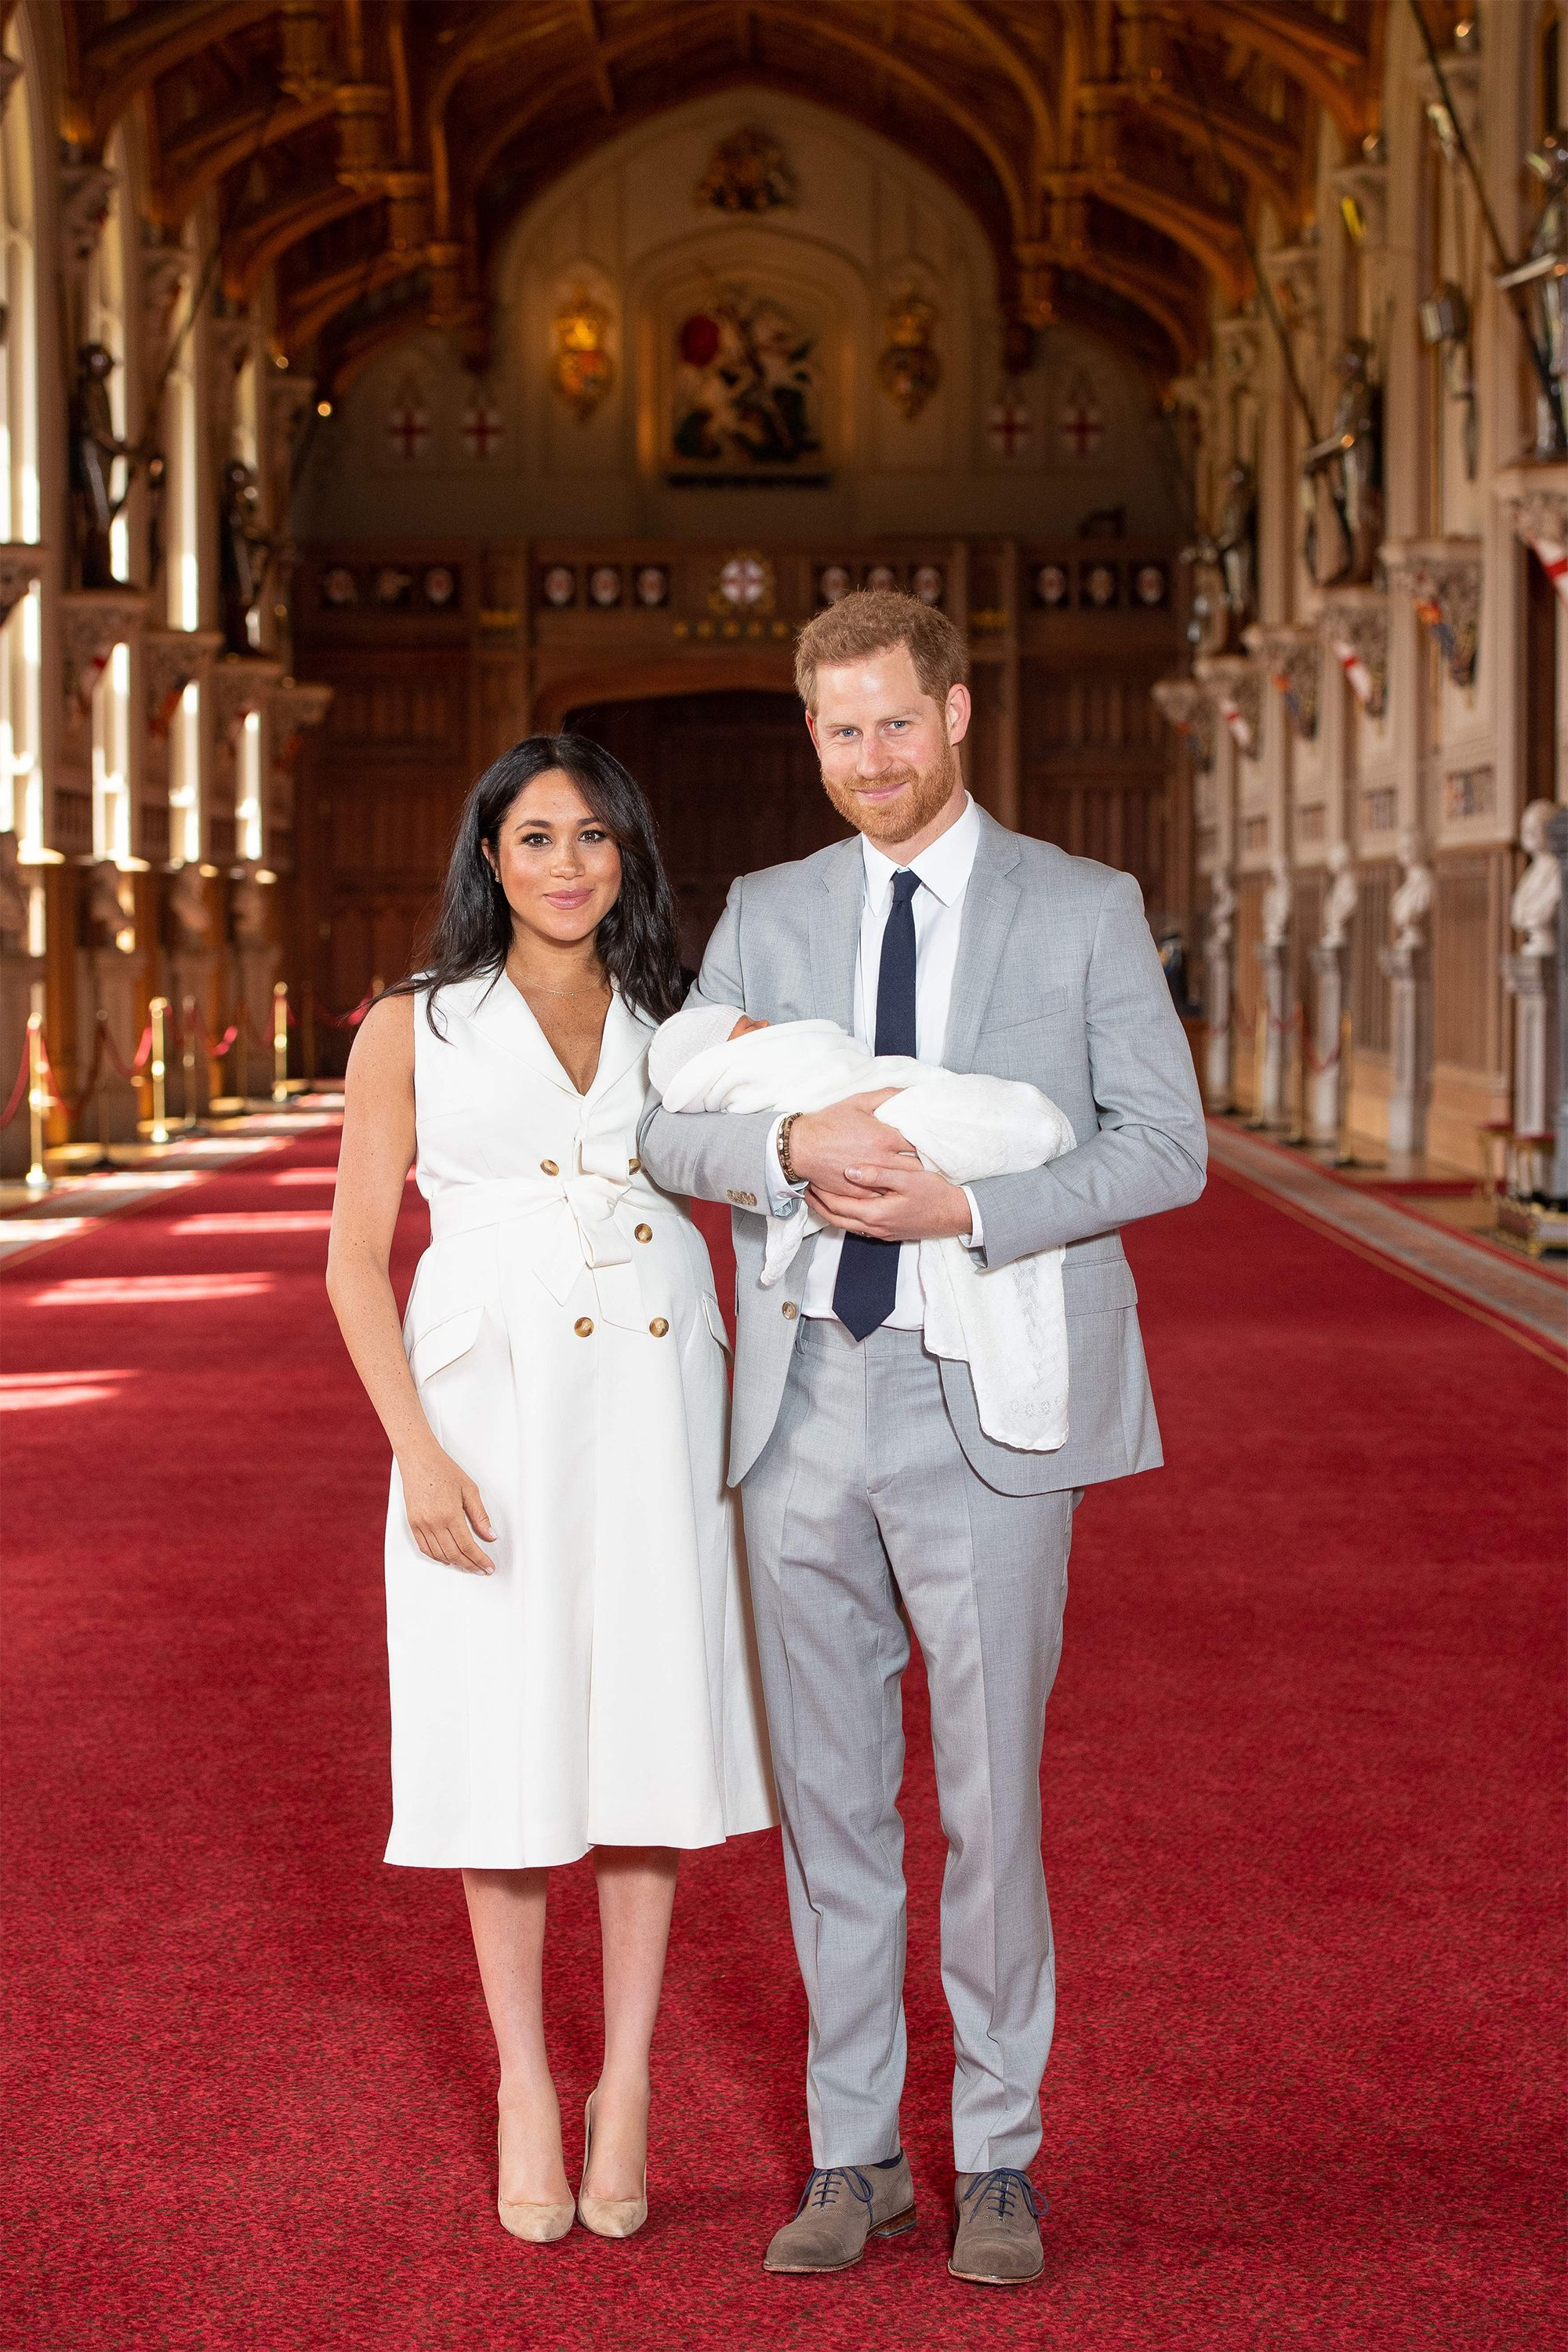 Meghan markle and prince harry royal baby news birthdate name and gender